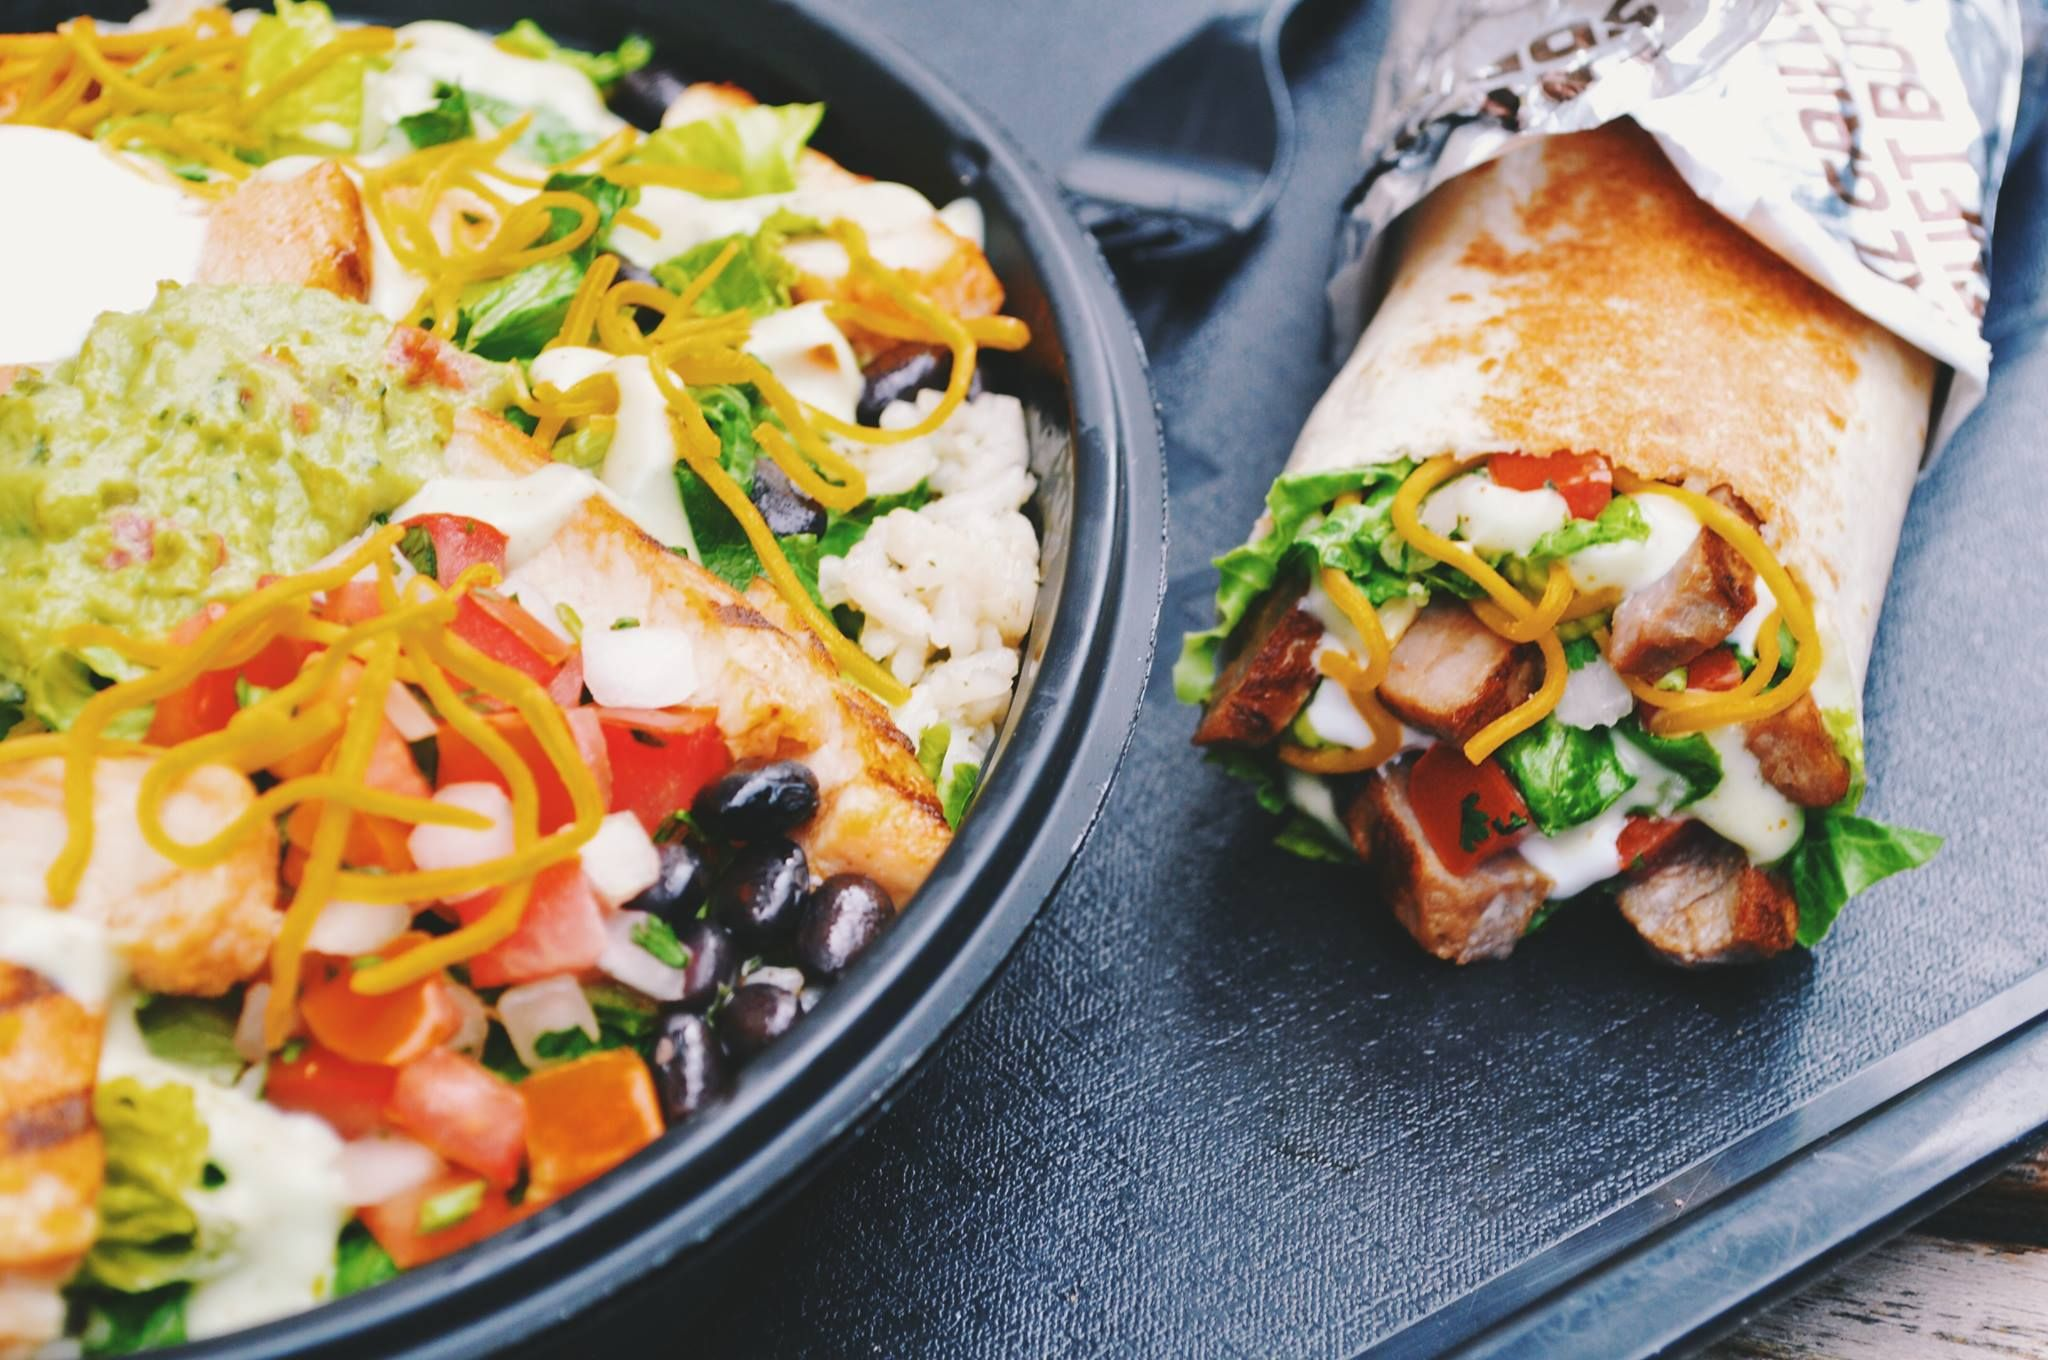 6 Fast Food Menu Items That Are Actually Kind Of Healthy Fast Healthy Meals Food Fast Food Menu